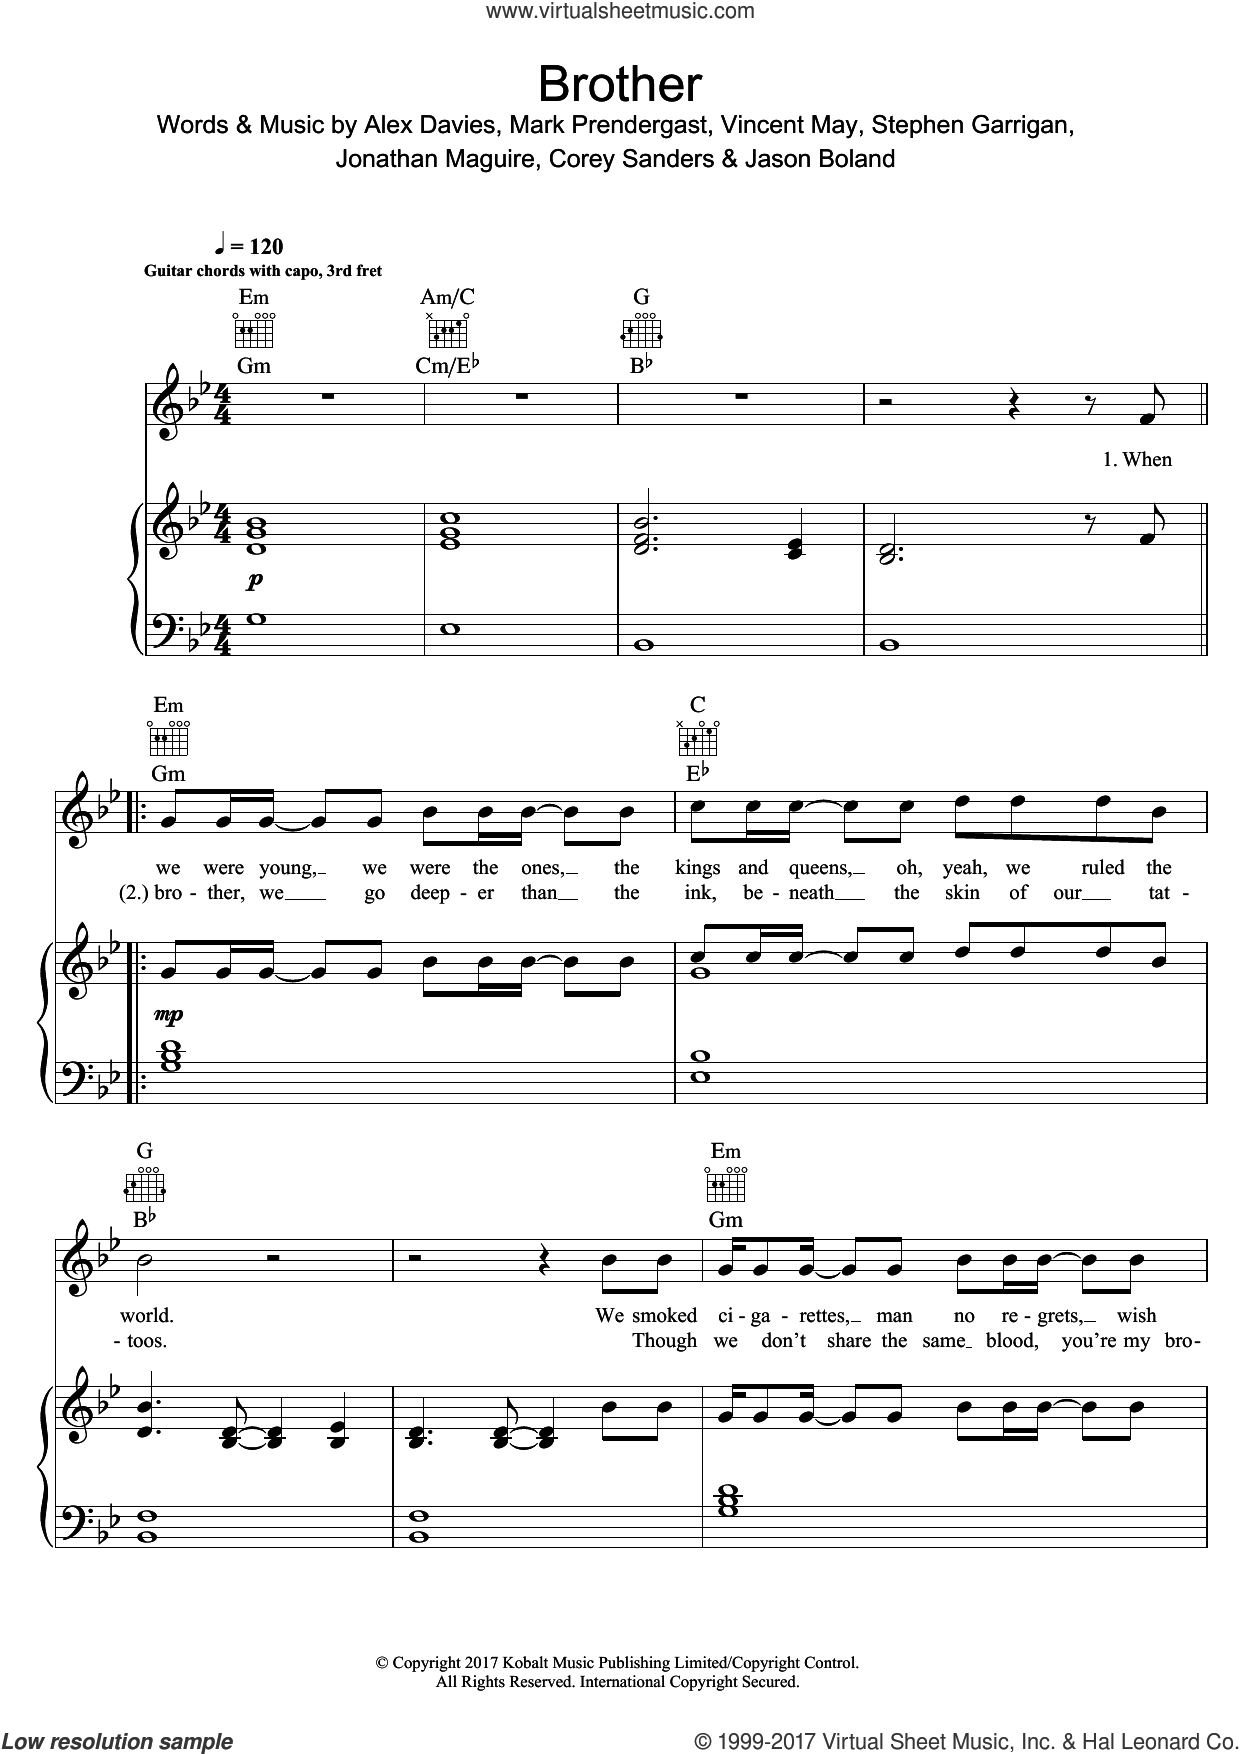 Brother sheet music for voice, piano or guitar by Kodaline, Alex Davies, Corey Sanders, Jason Boland, Jonathan Maguire, Mark Prendergast, Stephen Garrigan and Vincent May, intermediate skill level